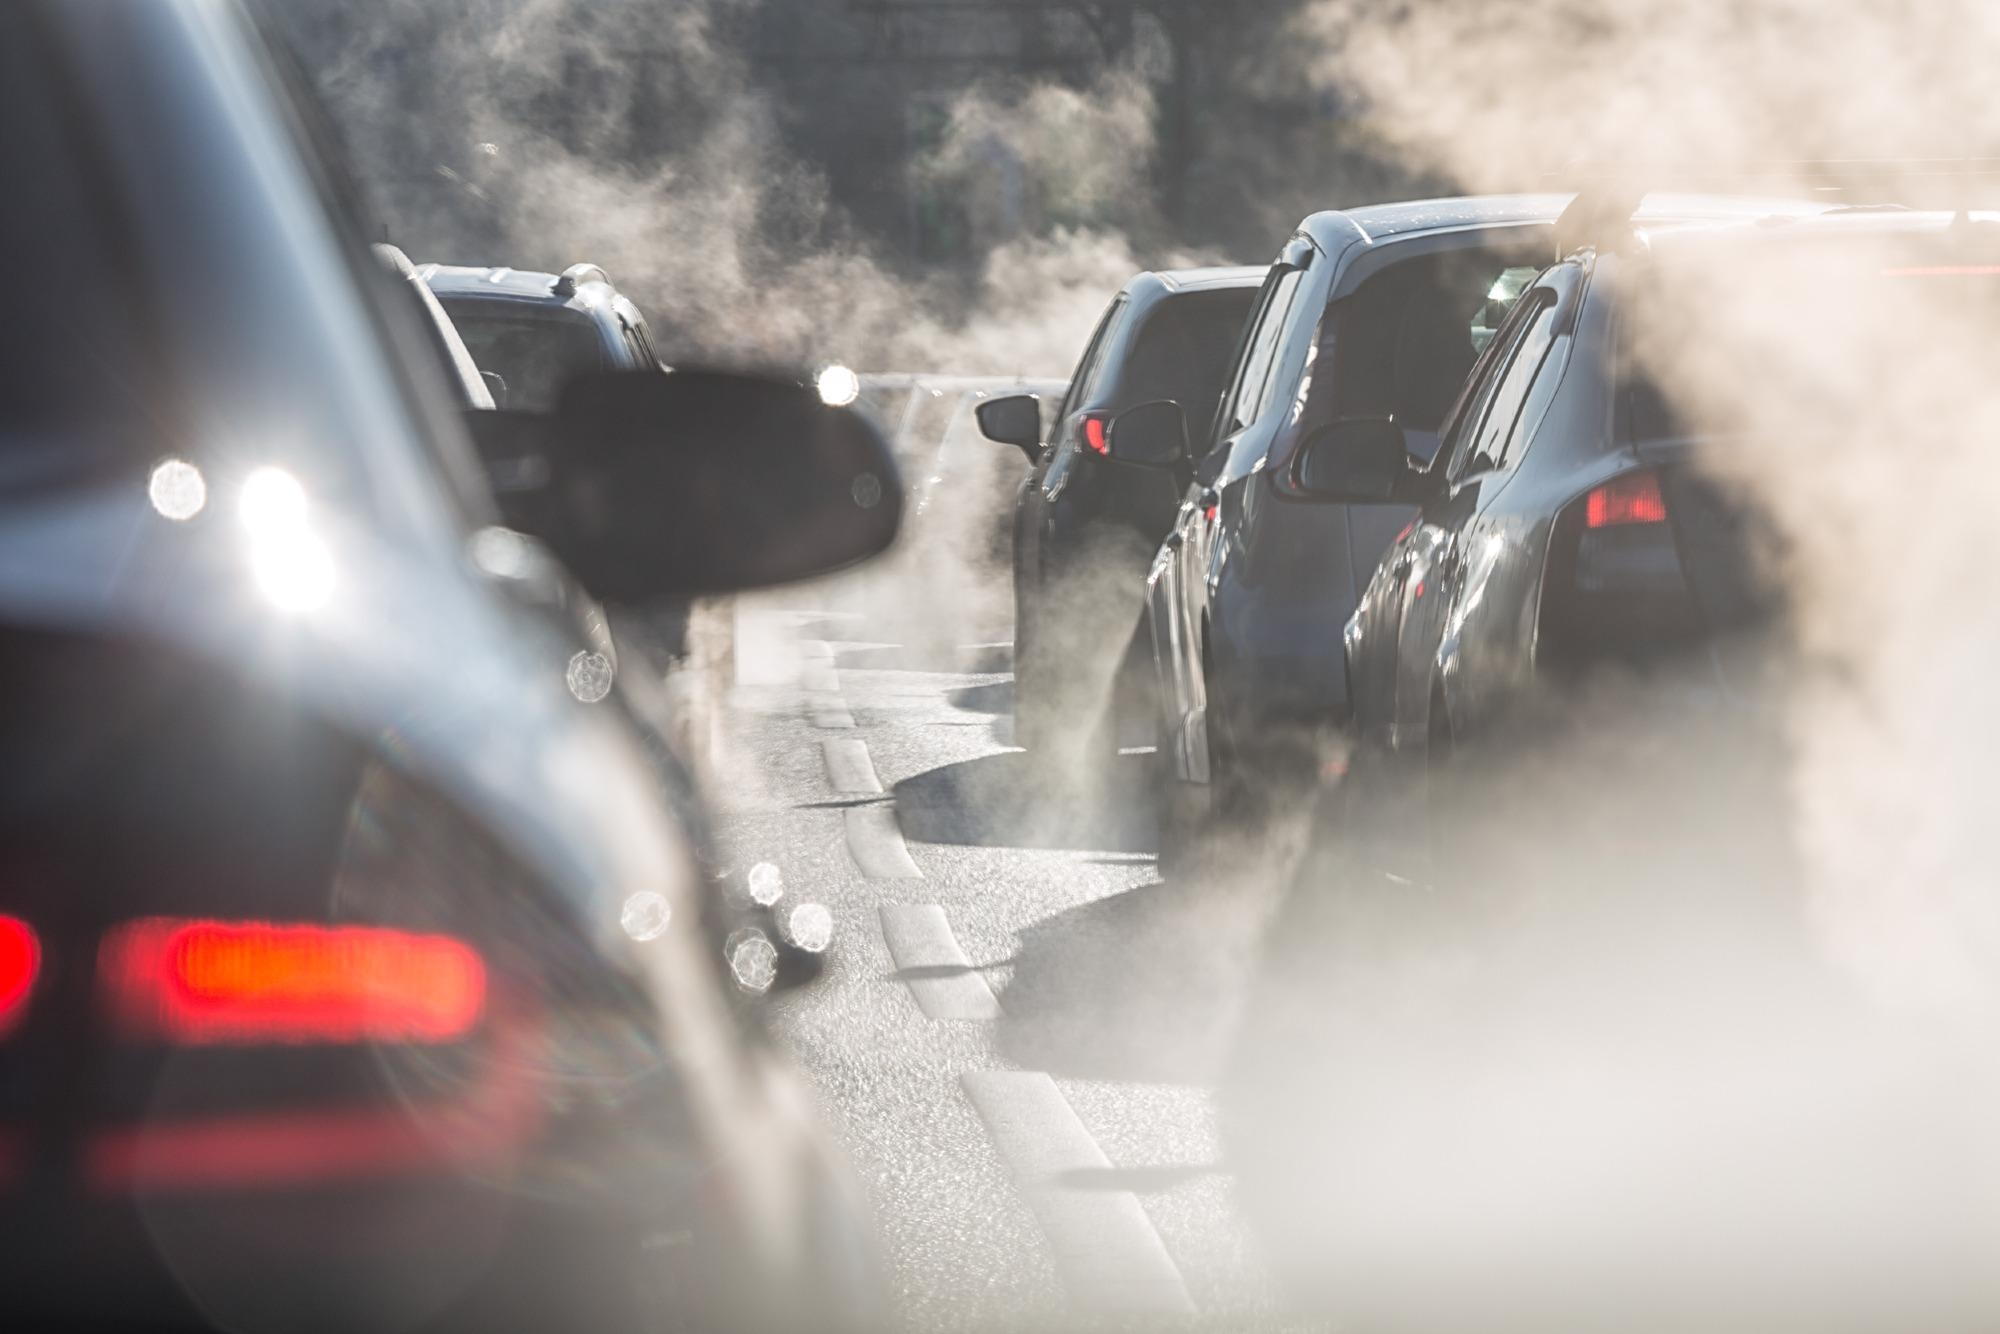 In-Car Pollution is a Major Cause of Health and Economic Loss in Developing Countries